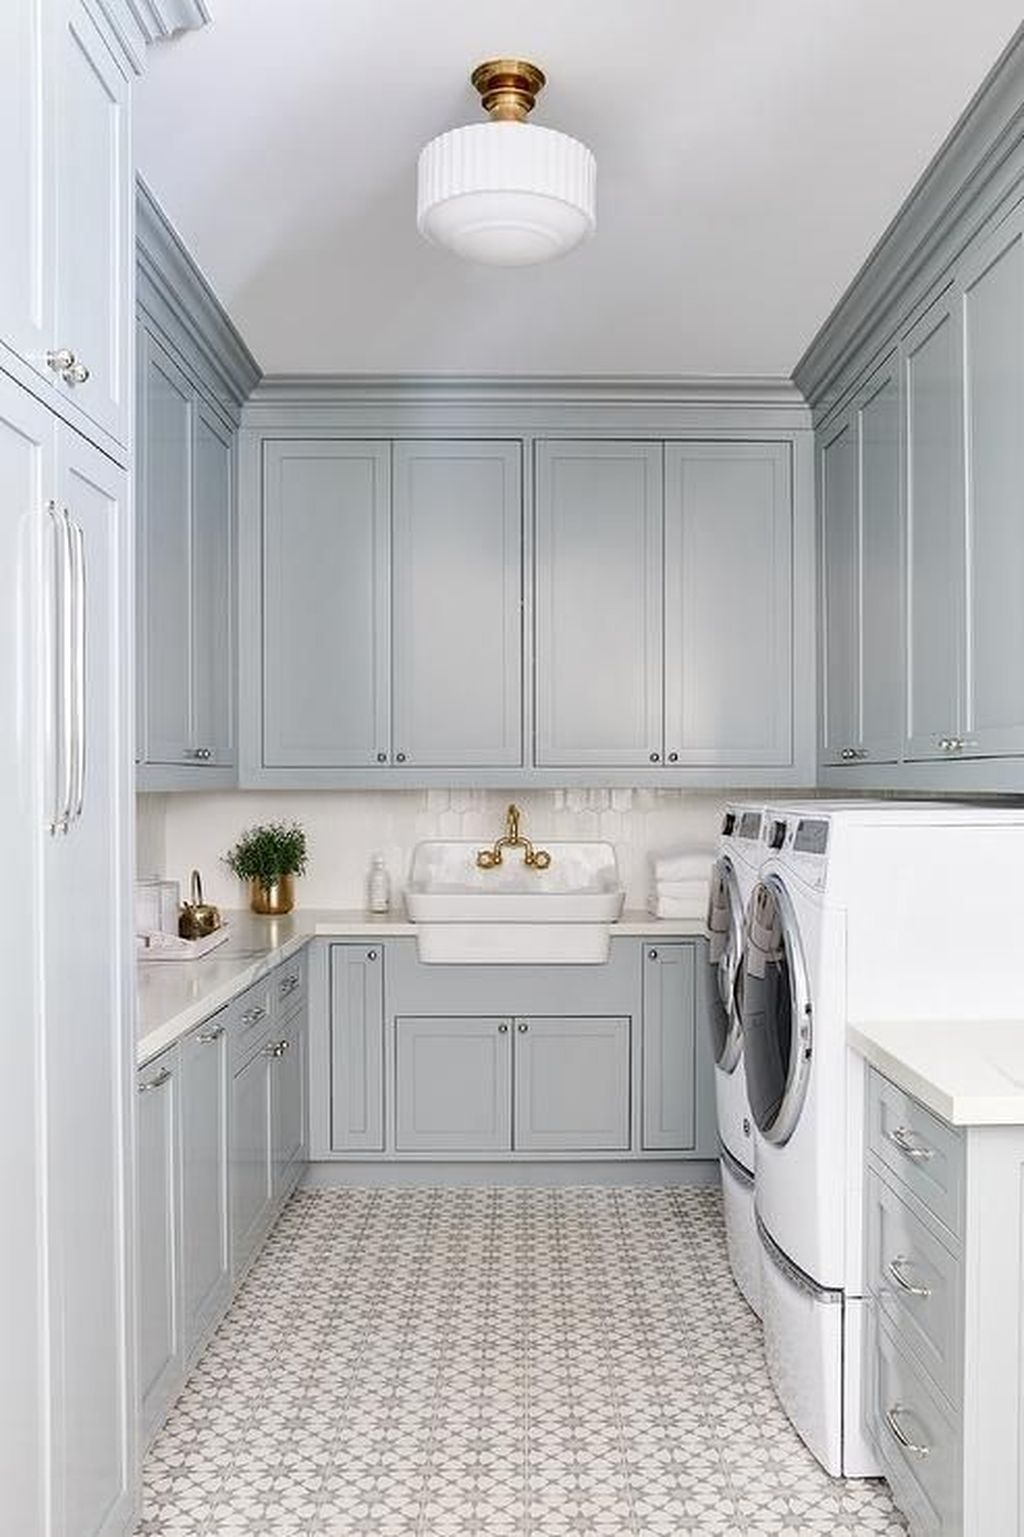 Adore this blue laundry room with patterned tile! Cutest gold and white flush mount light in this remodeled laundry room! #bluelaundryroom #renovatedlaundryroom #patternedtilefloors #trendyfloors